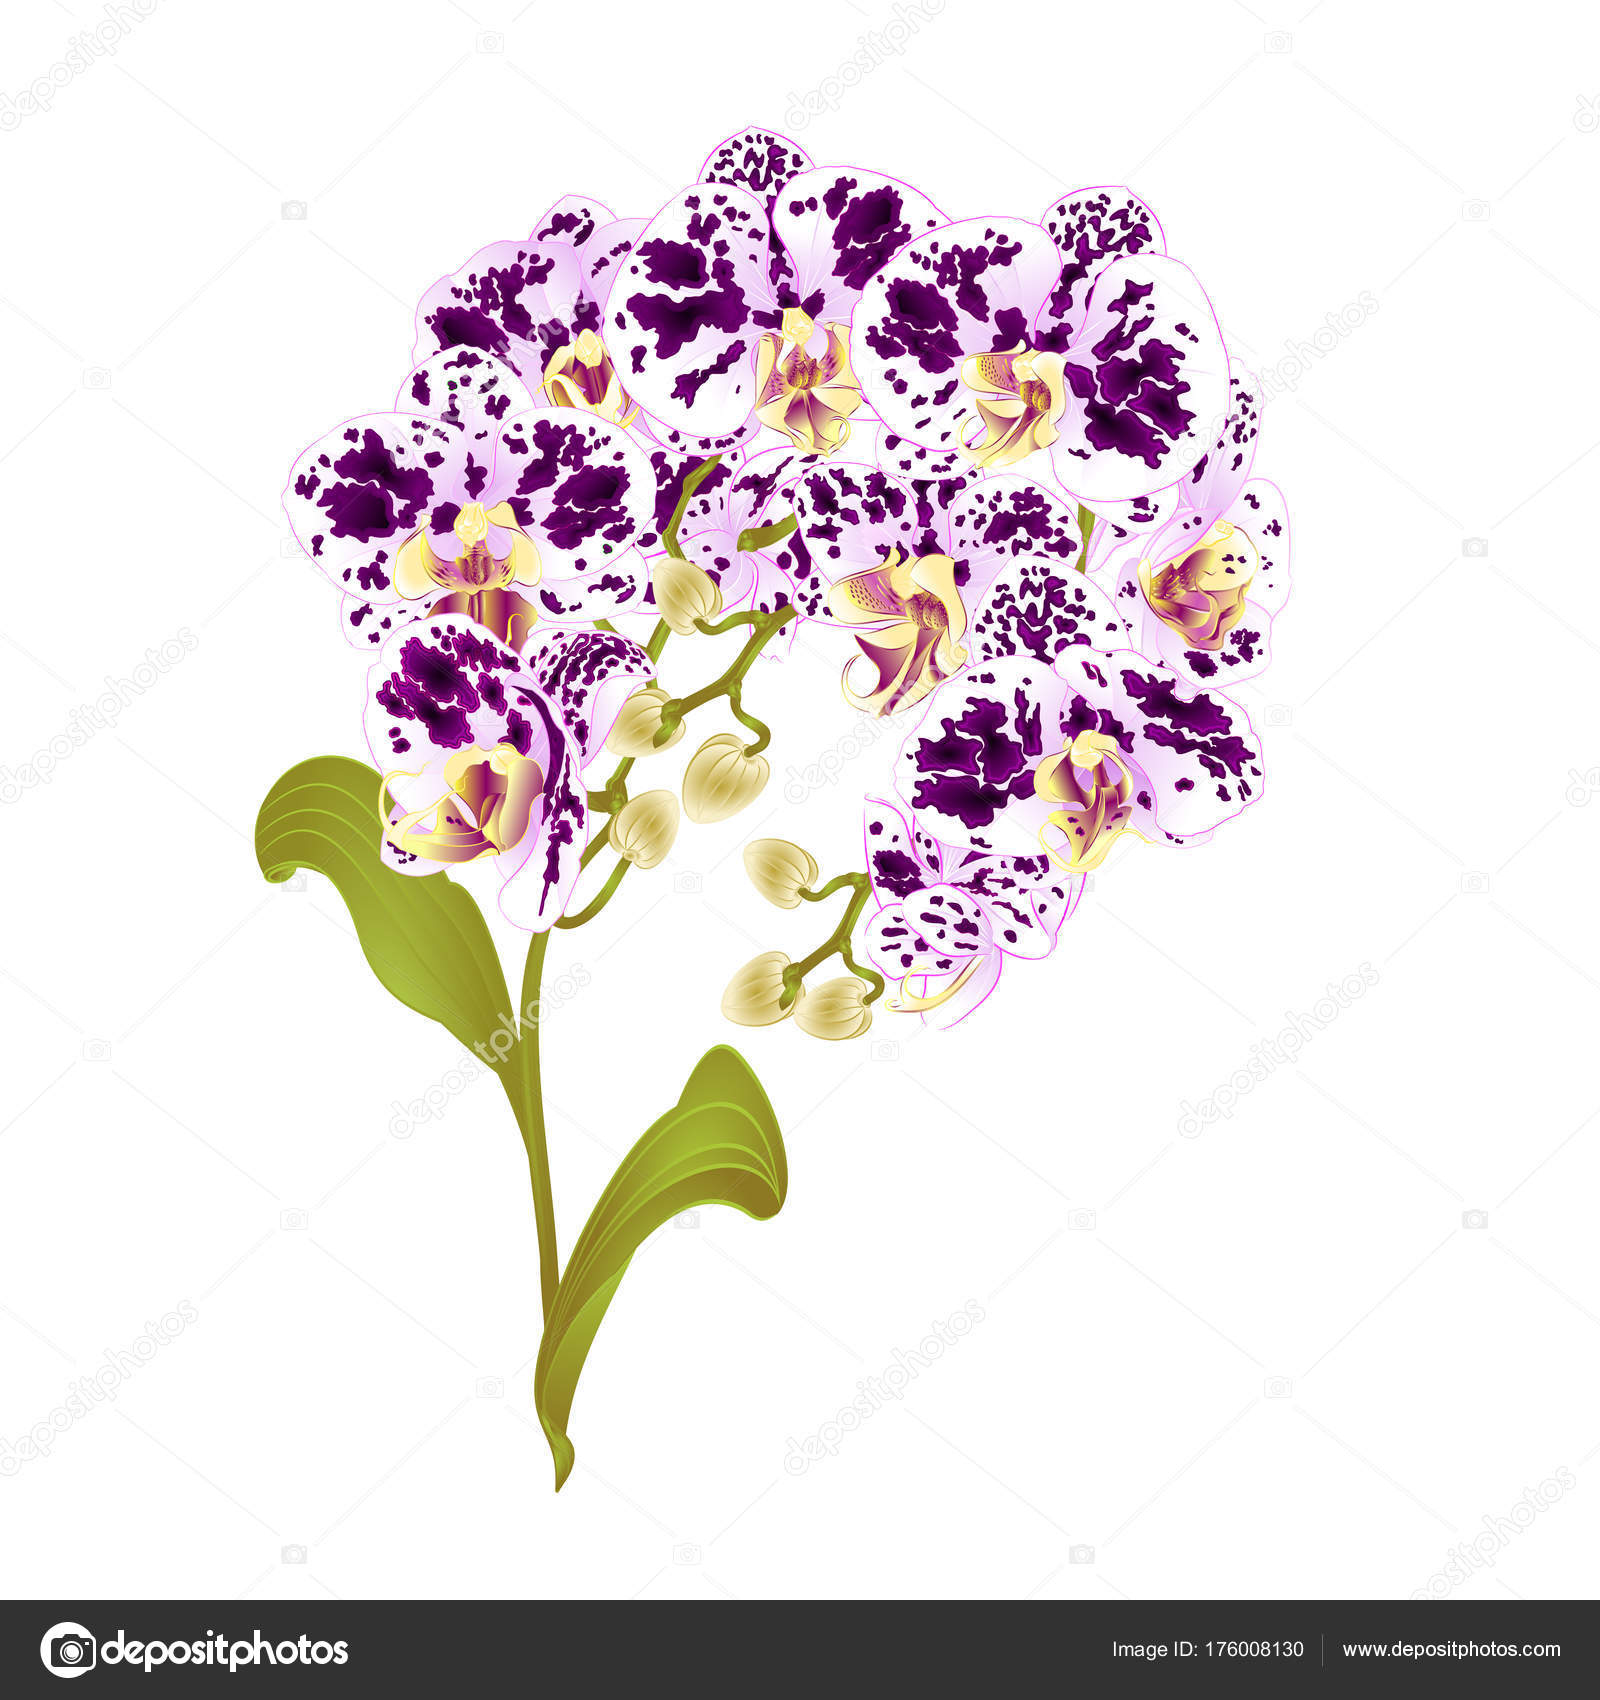 Branches orchid phalaenopsis spotted purple white flowers tropical branches orchid phalaenopsis spotted purple and white flowers tropical plants green stem and buds and leaves vintage vector botanical illustration for mightylinksfo